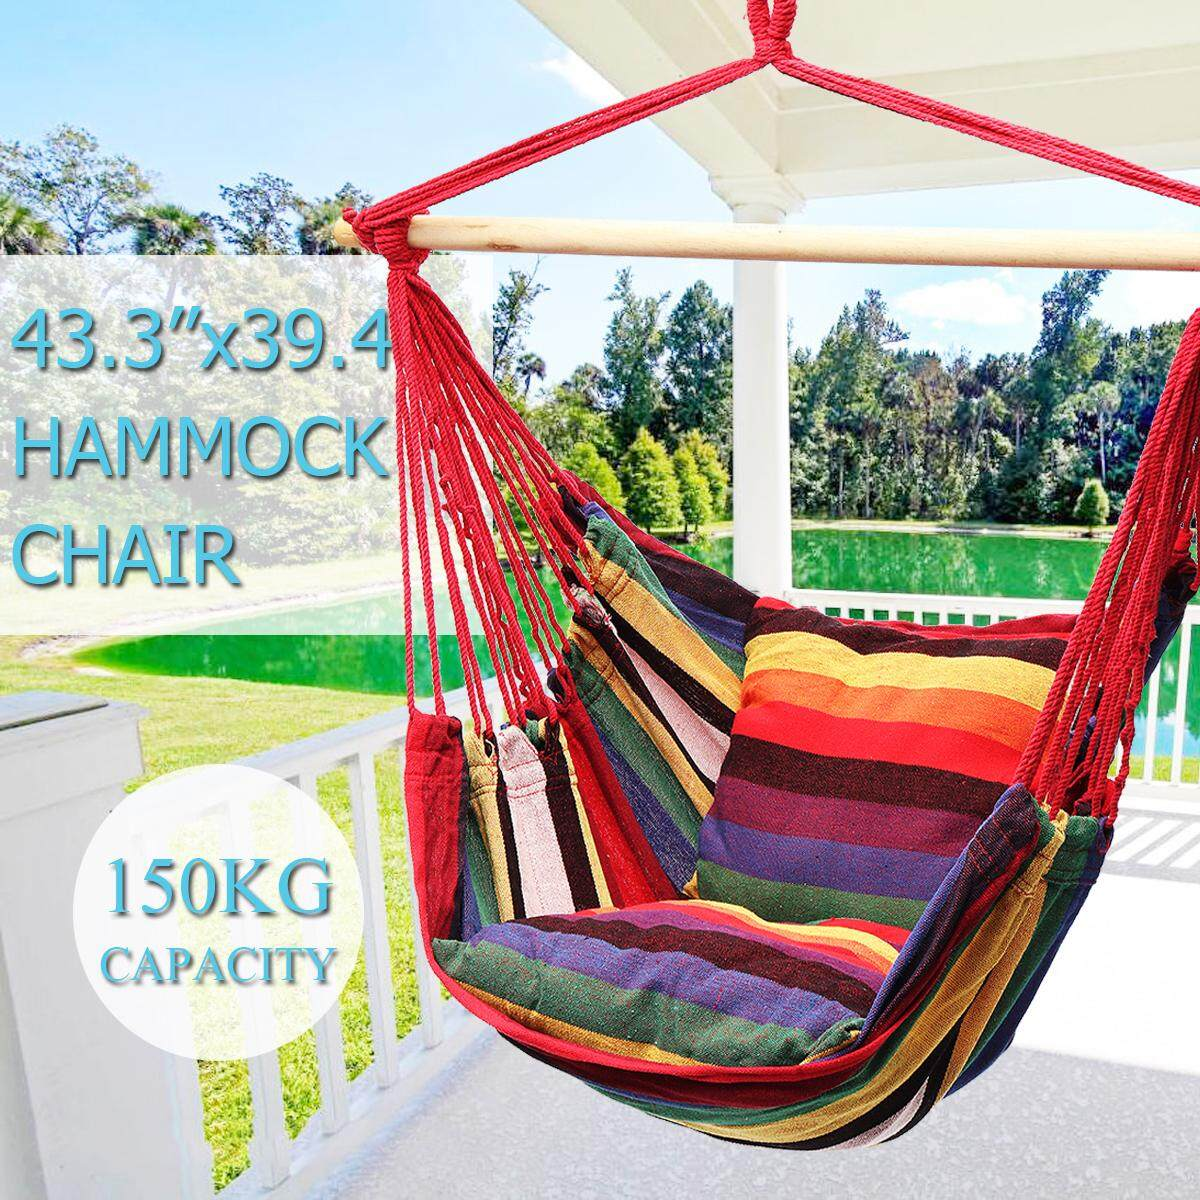 2PCS 43.3x39.4 Hanging Hammock Chair Swing Outdoor Indoor Camping Garden - intl